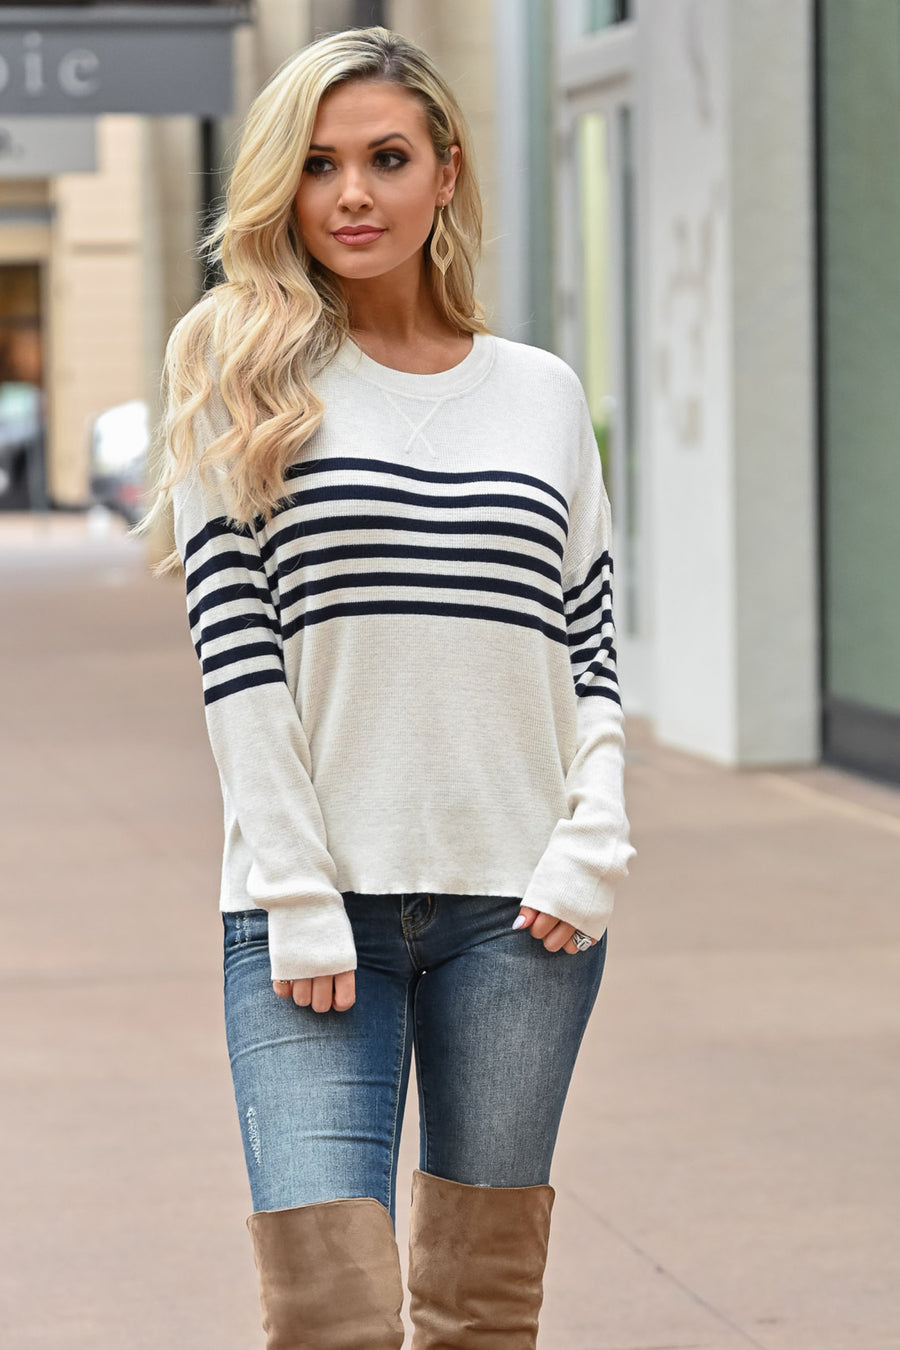 THREAD & SUPPLY Check Your Schedule Top - Ivory & Navy womens trendy striped thermal top closet candy front 2